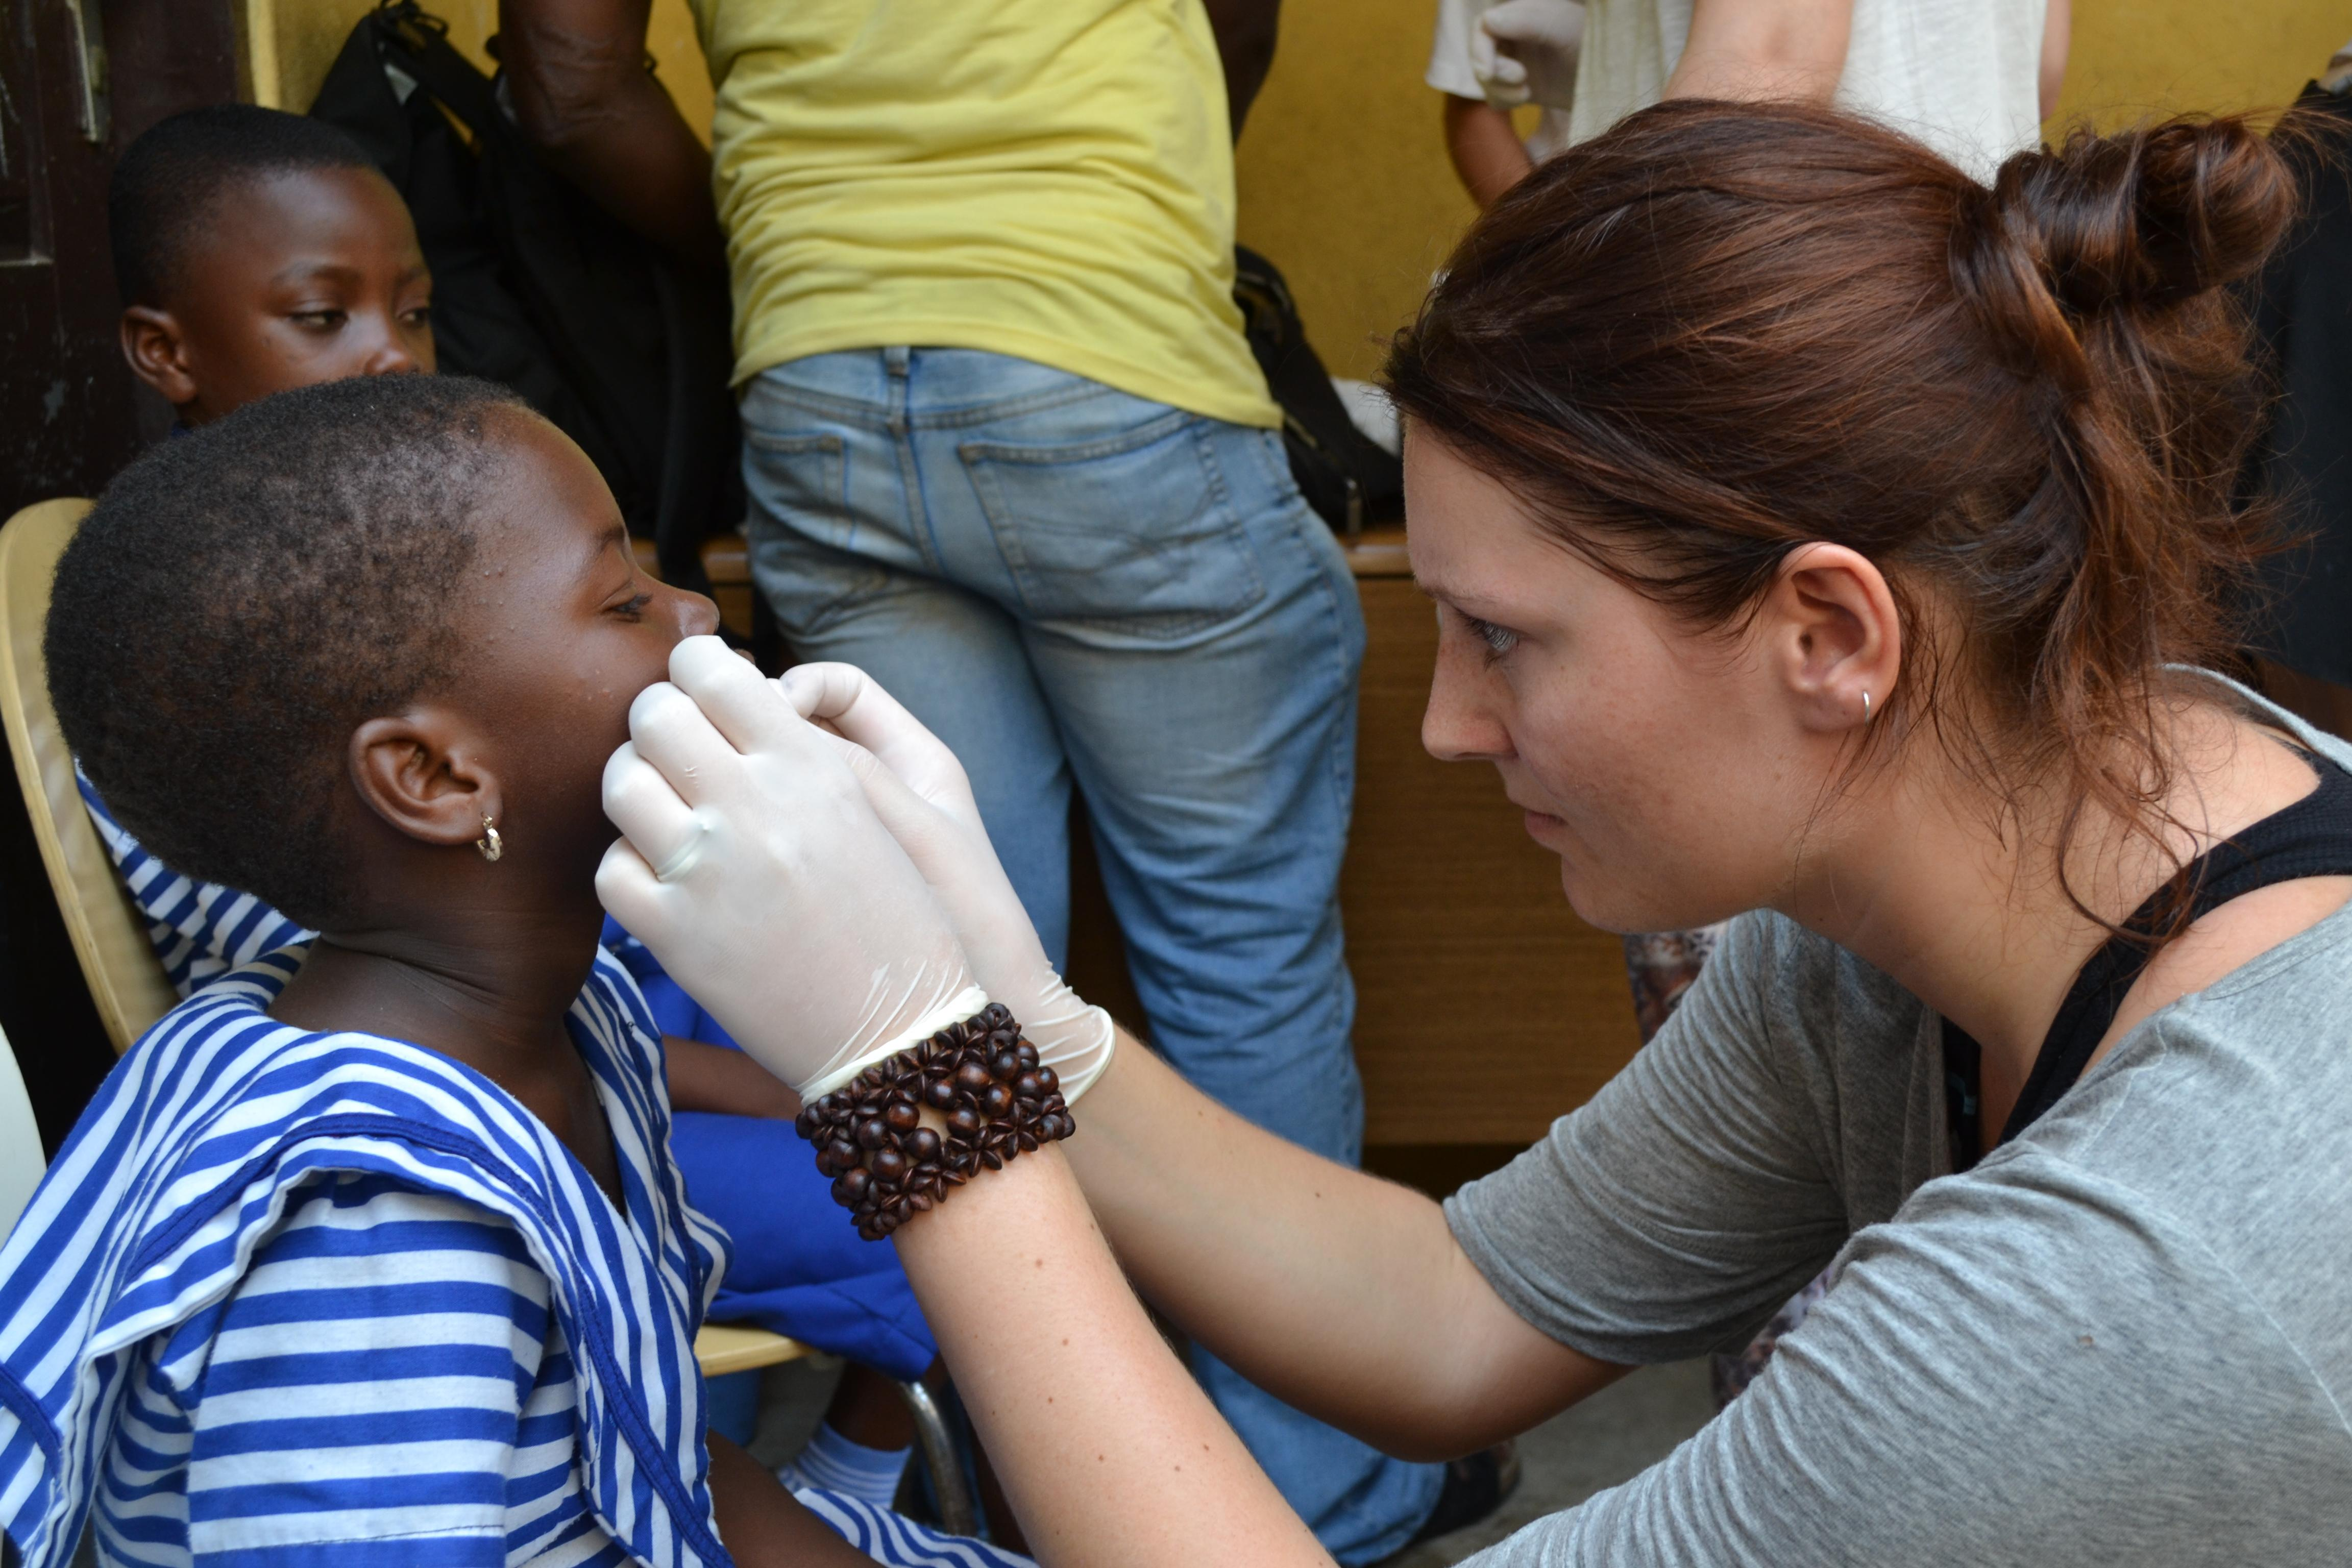 Child in Ghana is being treated on the face by a female healthcare intern at a medical outreach